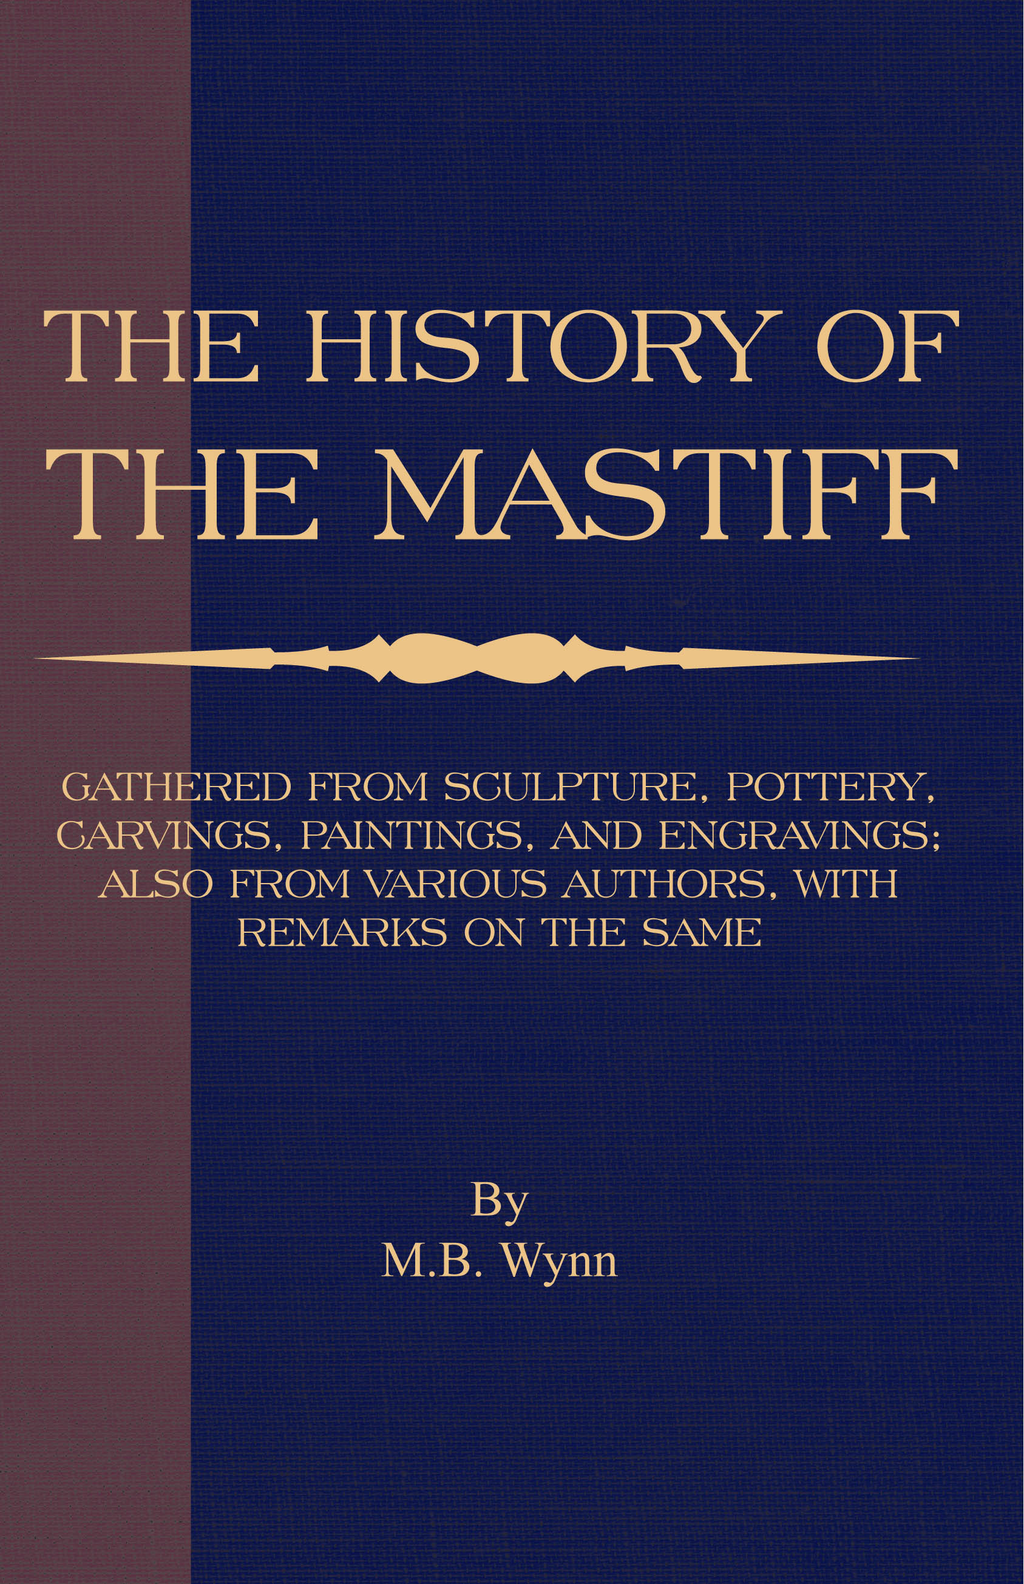 History of The Mastiff - Gathered From Sculpture, Pottery, Carvings, Paintings and Engravings; Also From Various Authors, With Remarks On Same (A Vintage Dog Books Breed Classic) By: M. B. Wynn